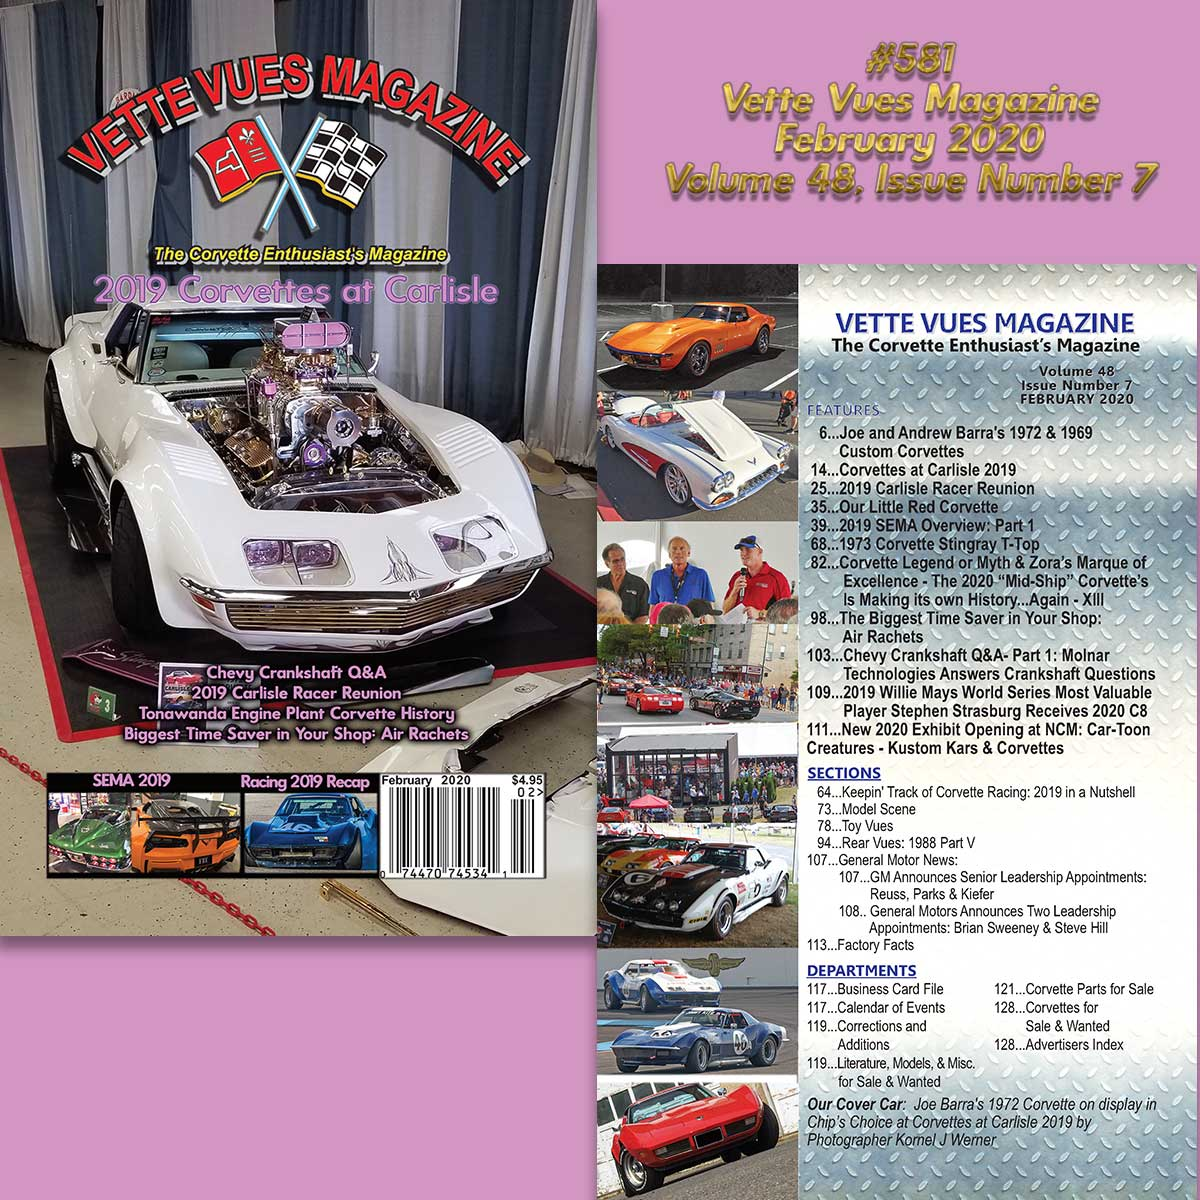 Vette Vues Magazine, February 2020, Volume 48, Issue Number 7